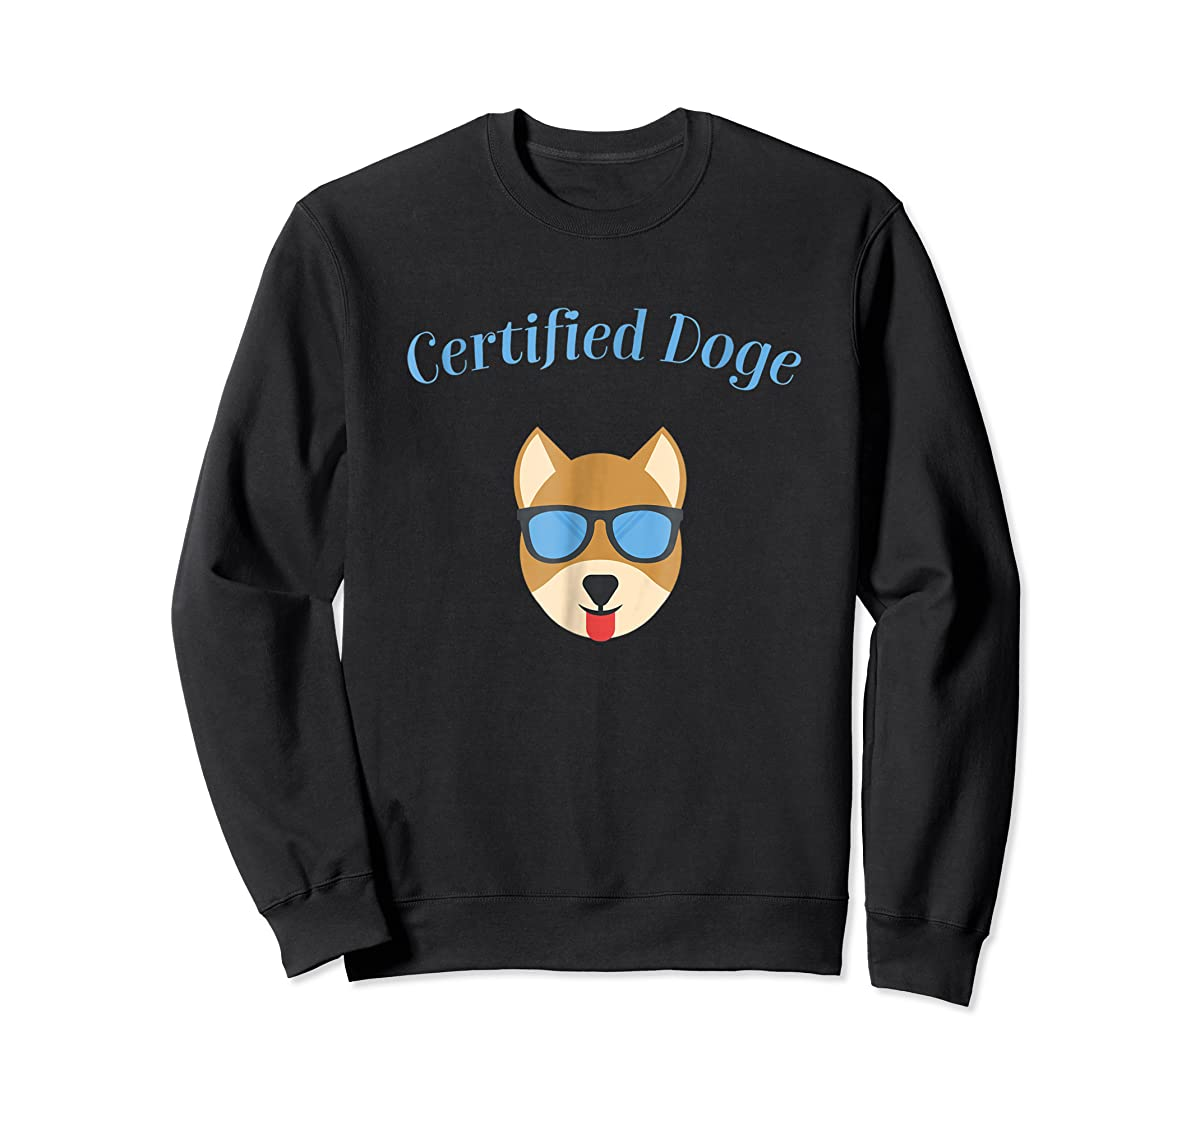 Certified Doge Tee Shirt for puppy Dog love and Fur Babies-Sweatshirt-Black